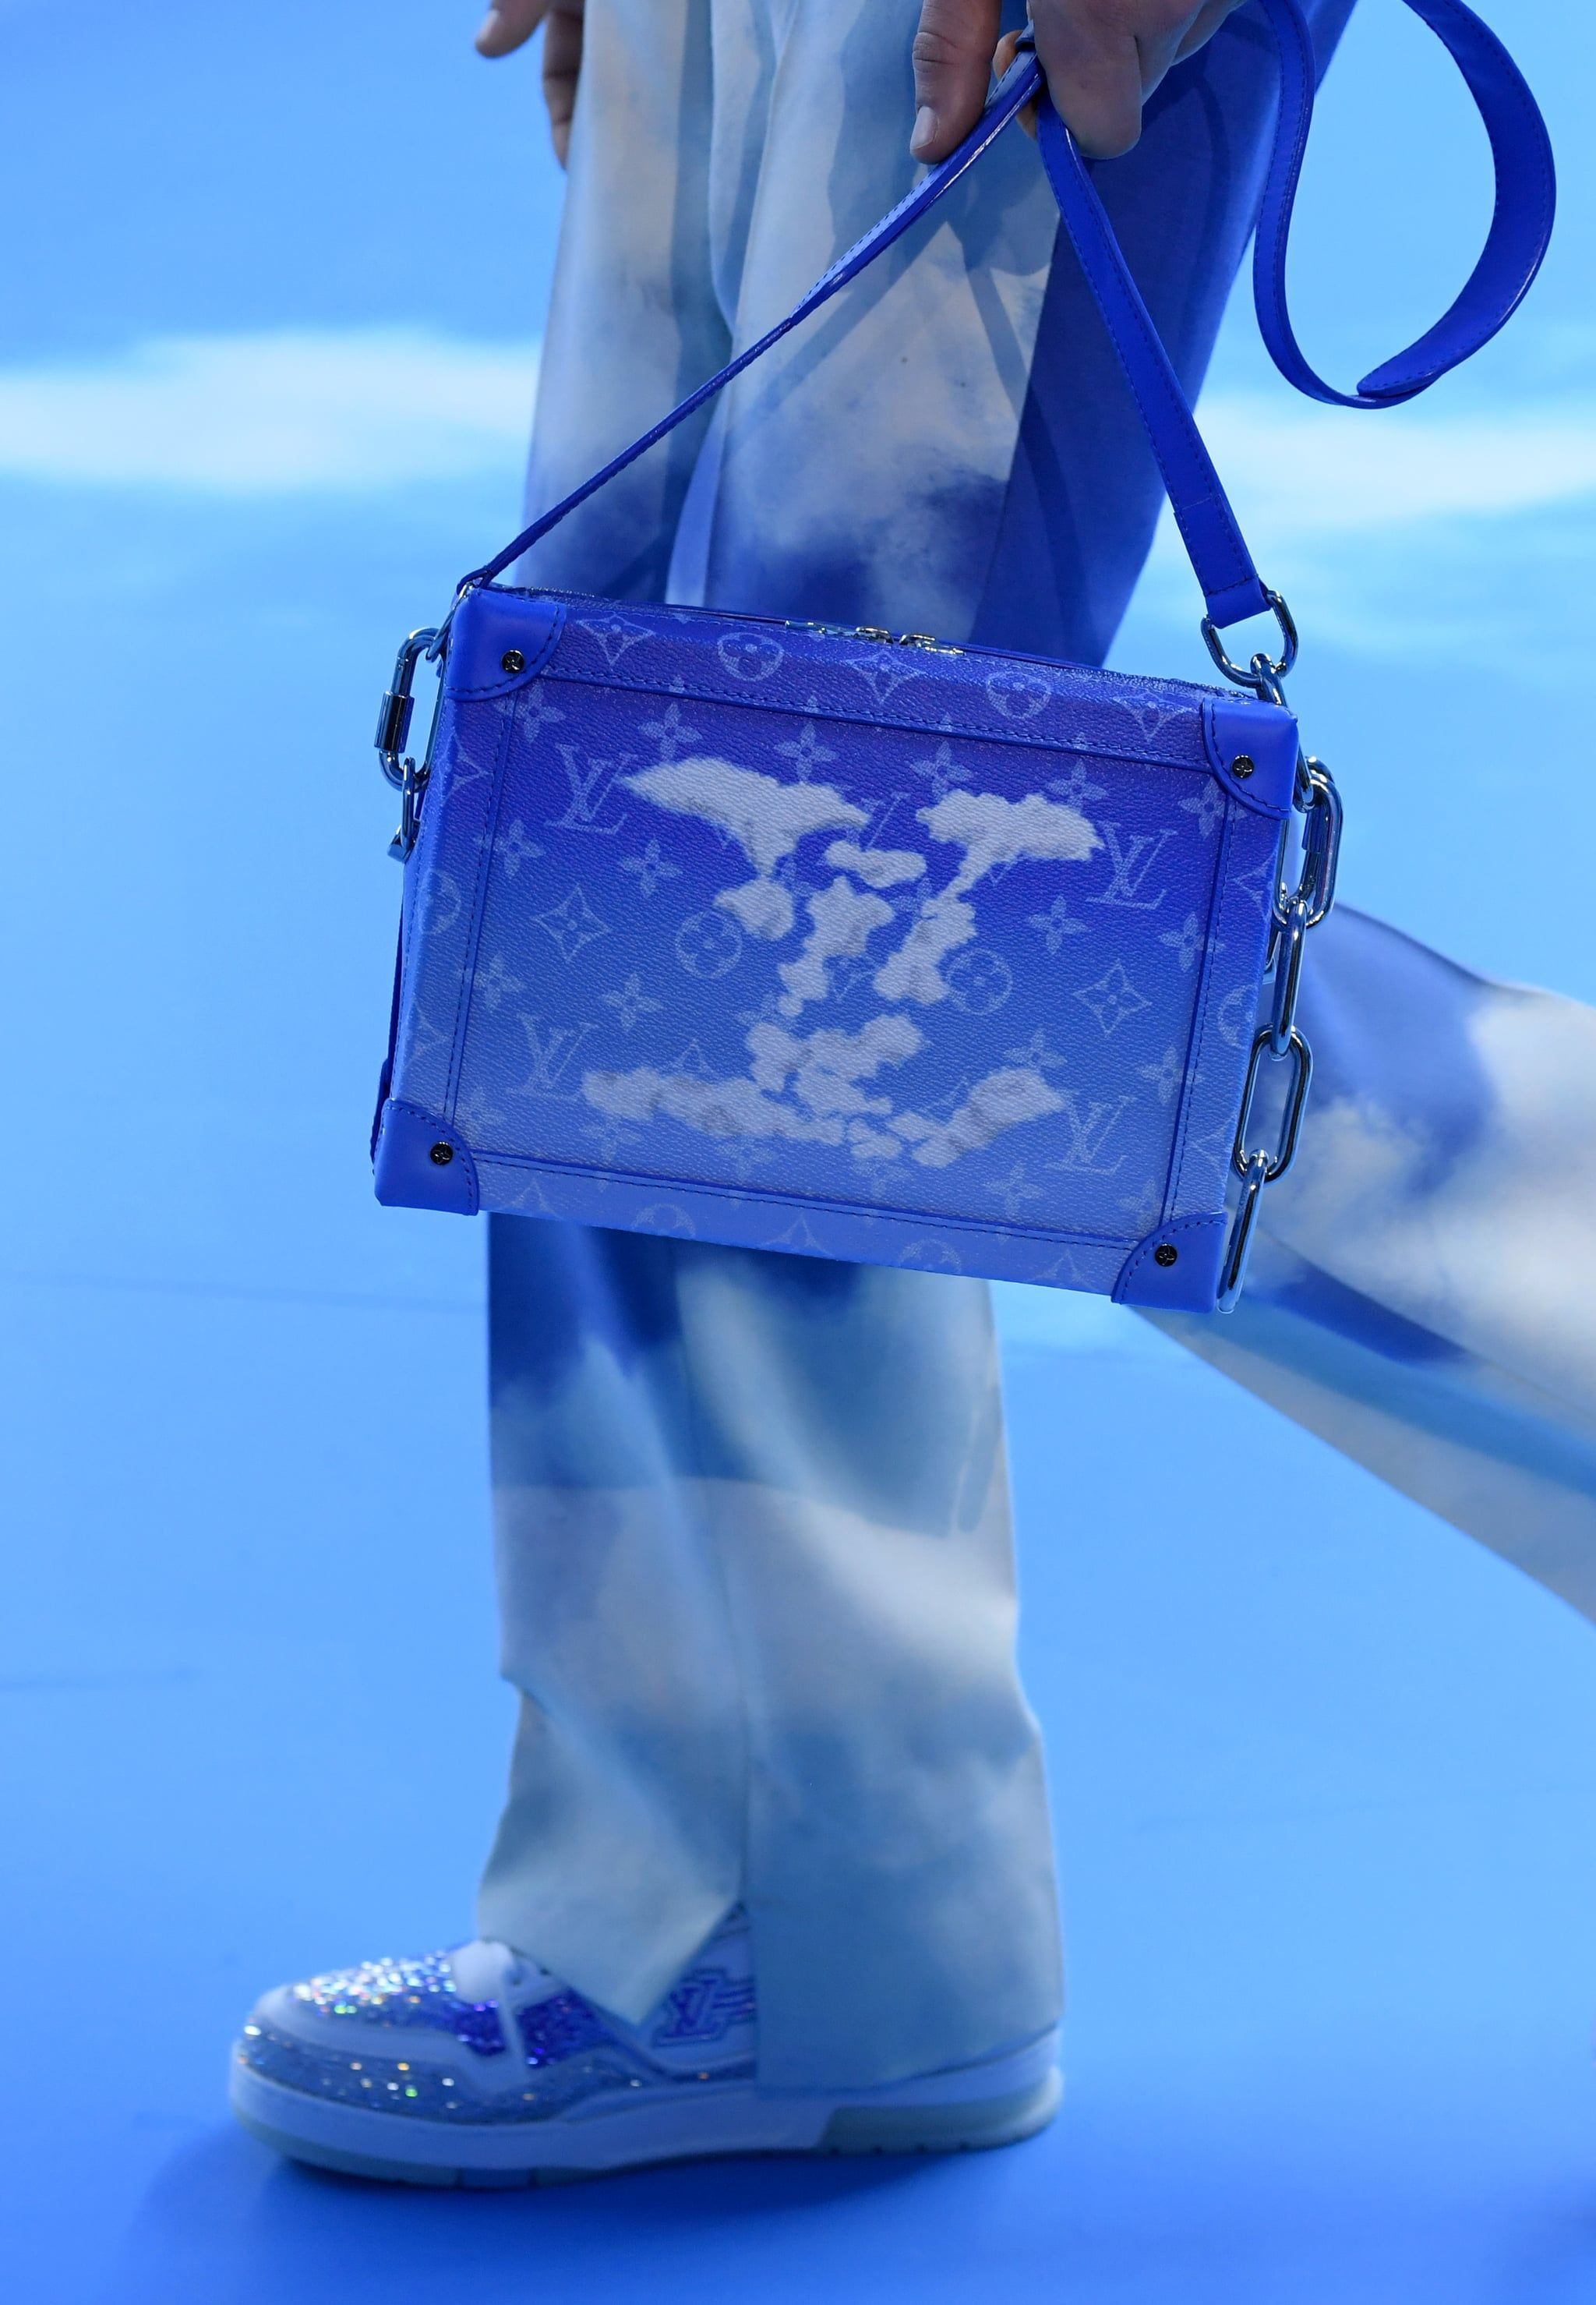 BRB, I'm Literally in the Clouds Dreaming About Louis Vuitton's New Accessories